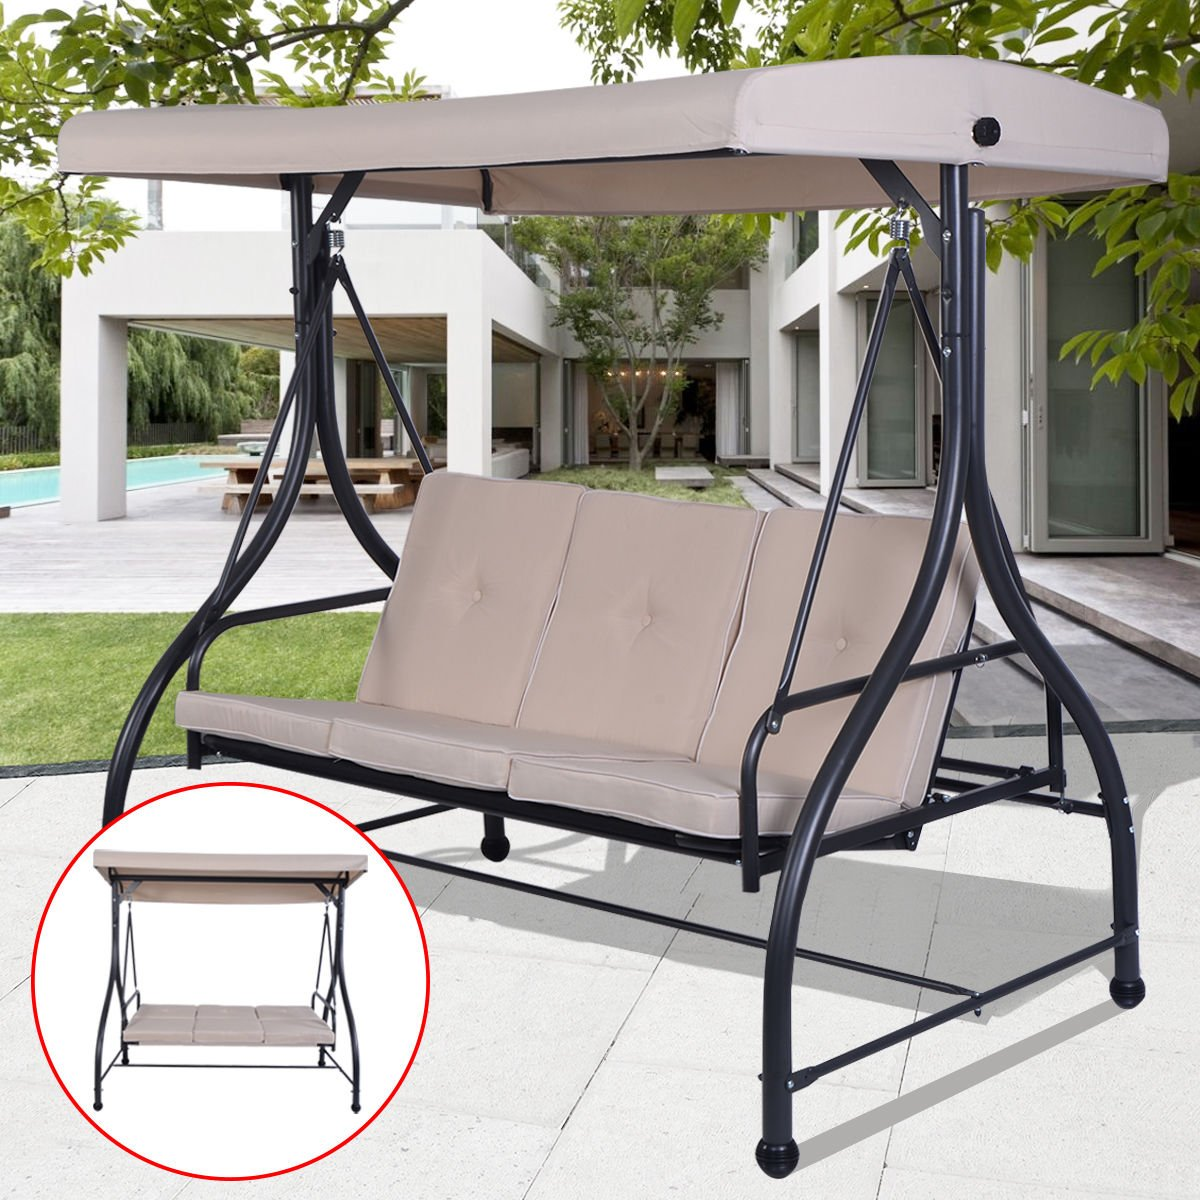 Beige Converting Bed Swing Hammock Chair Patio 3 Person Seat With Canopy Outdoor Furniture